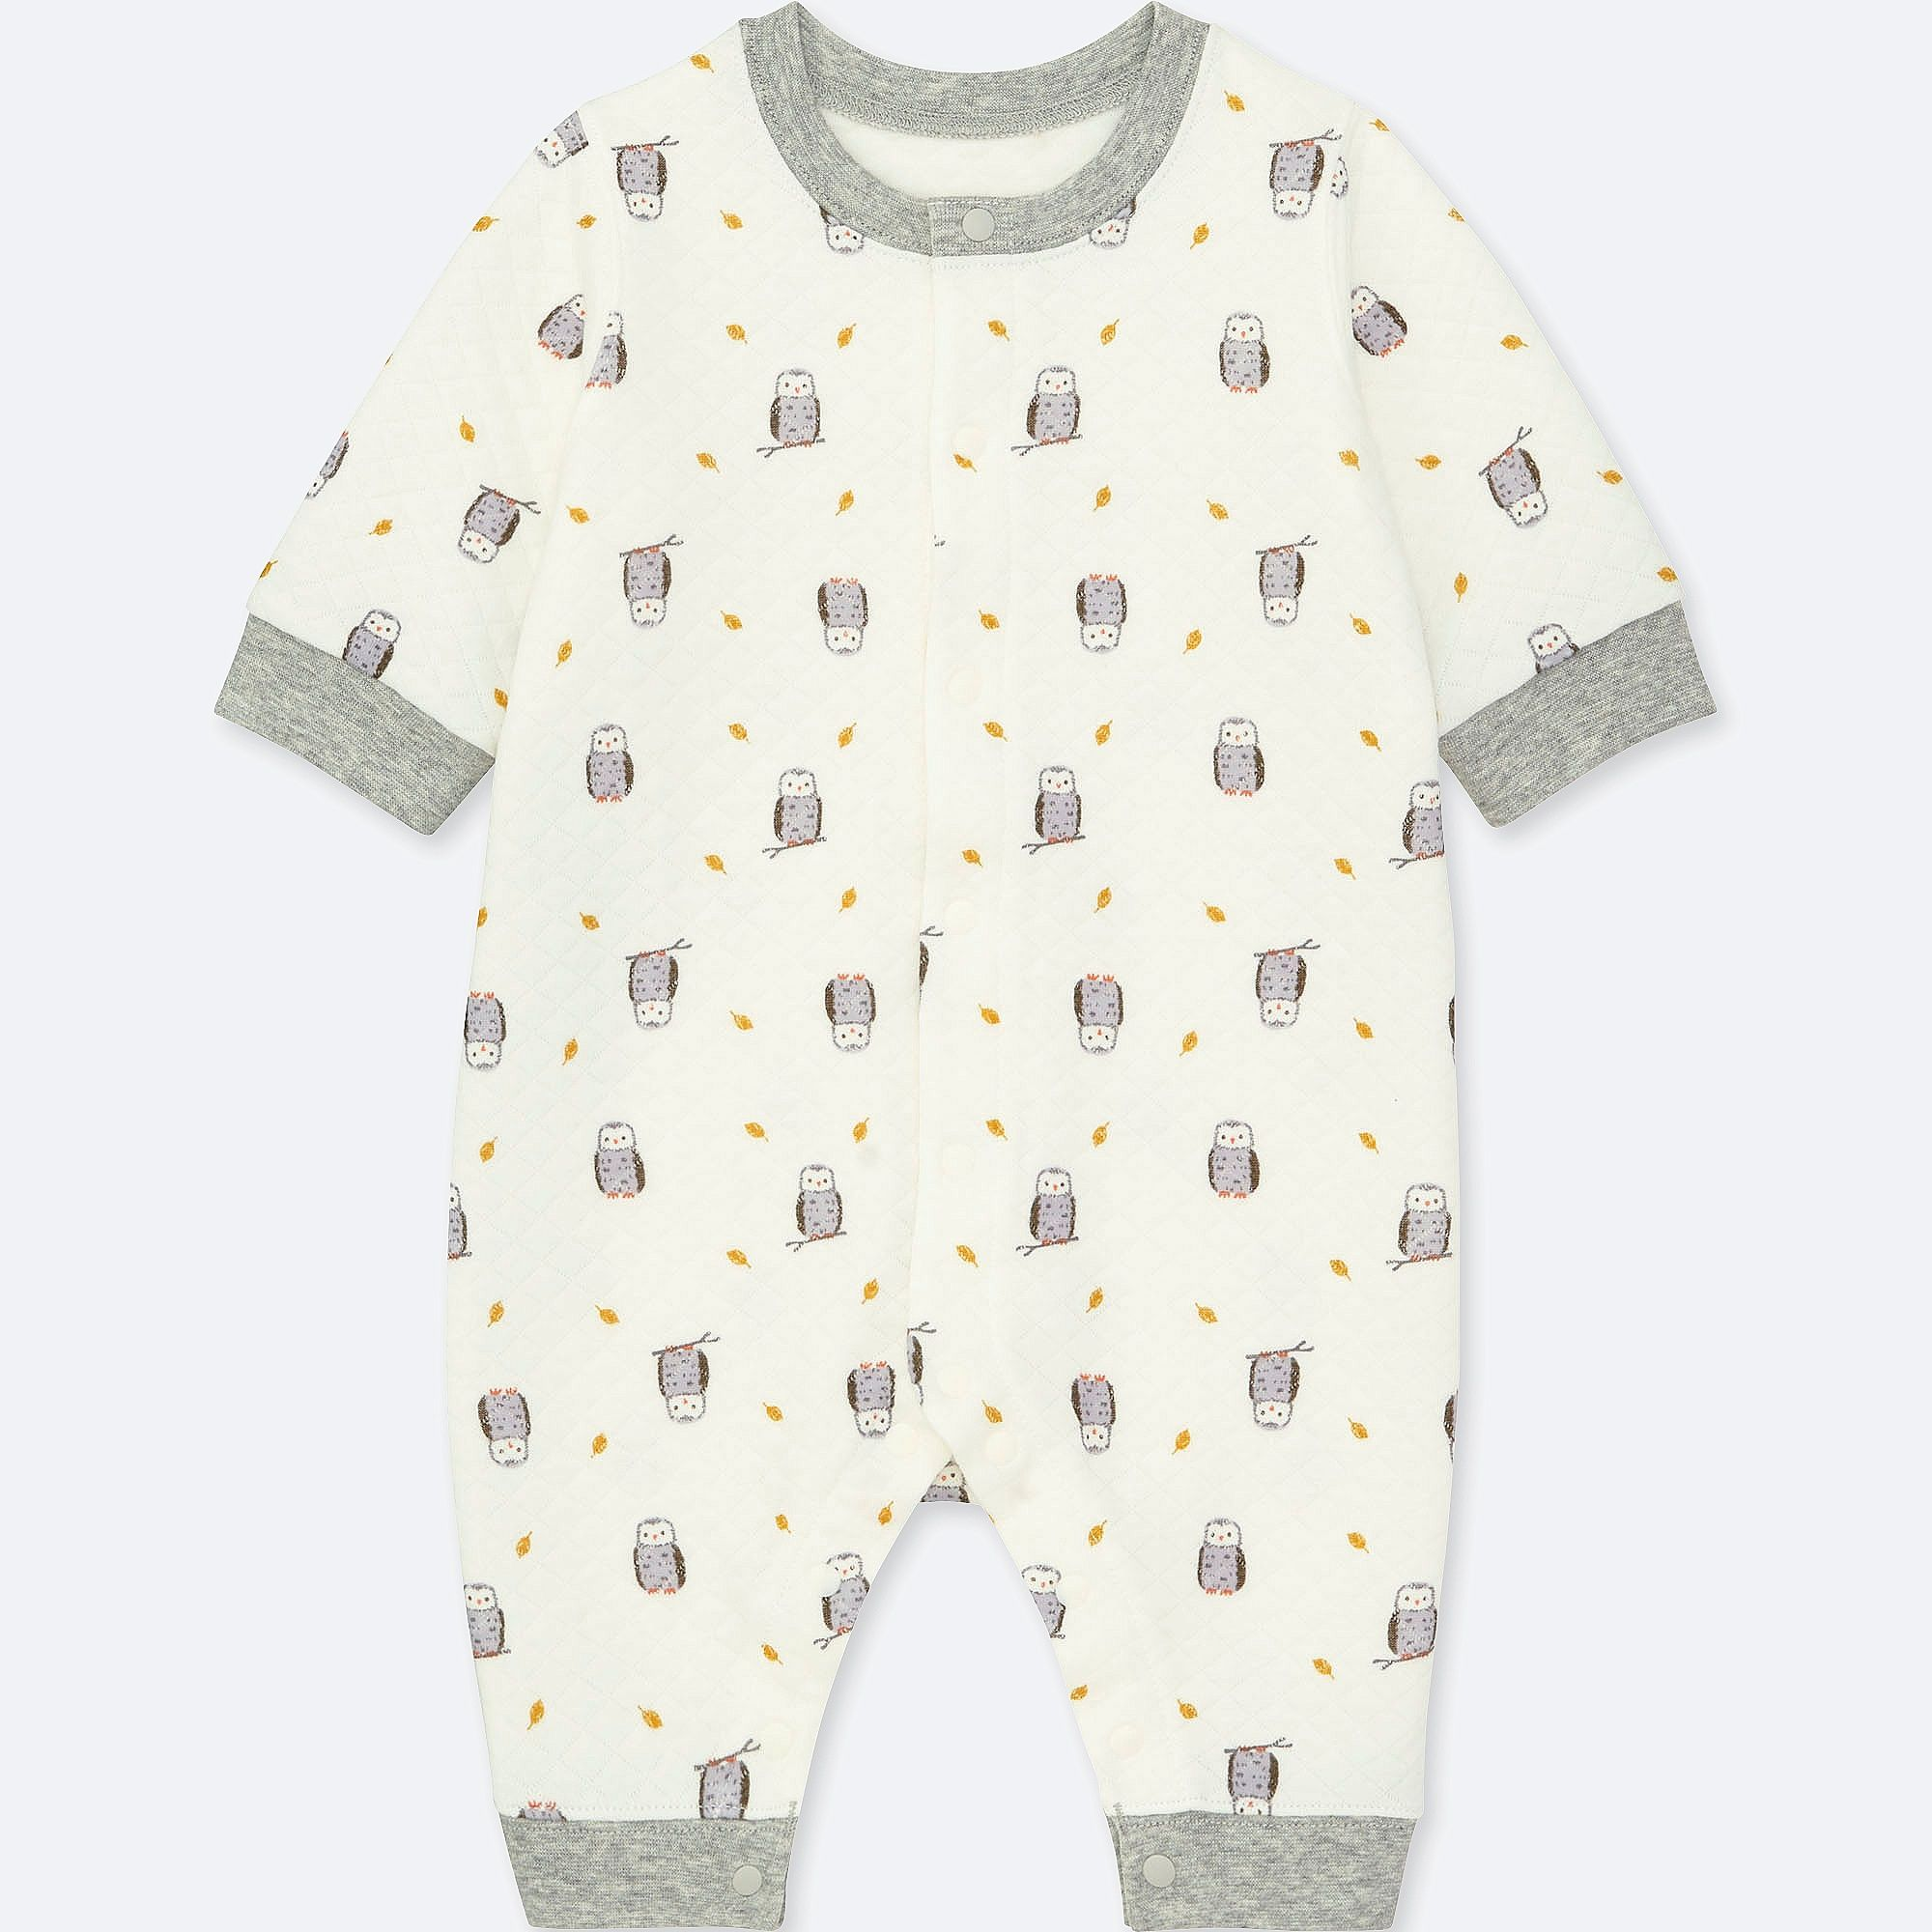 Mamas /& Papas Baby Strip Wrap All-in-one Romper